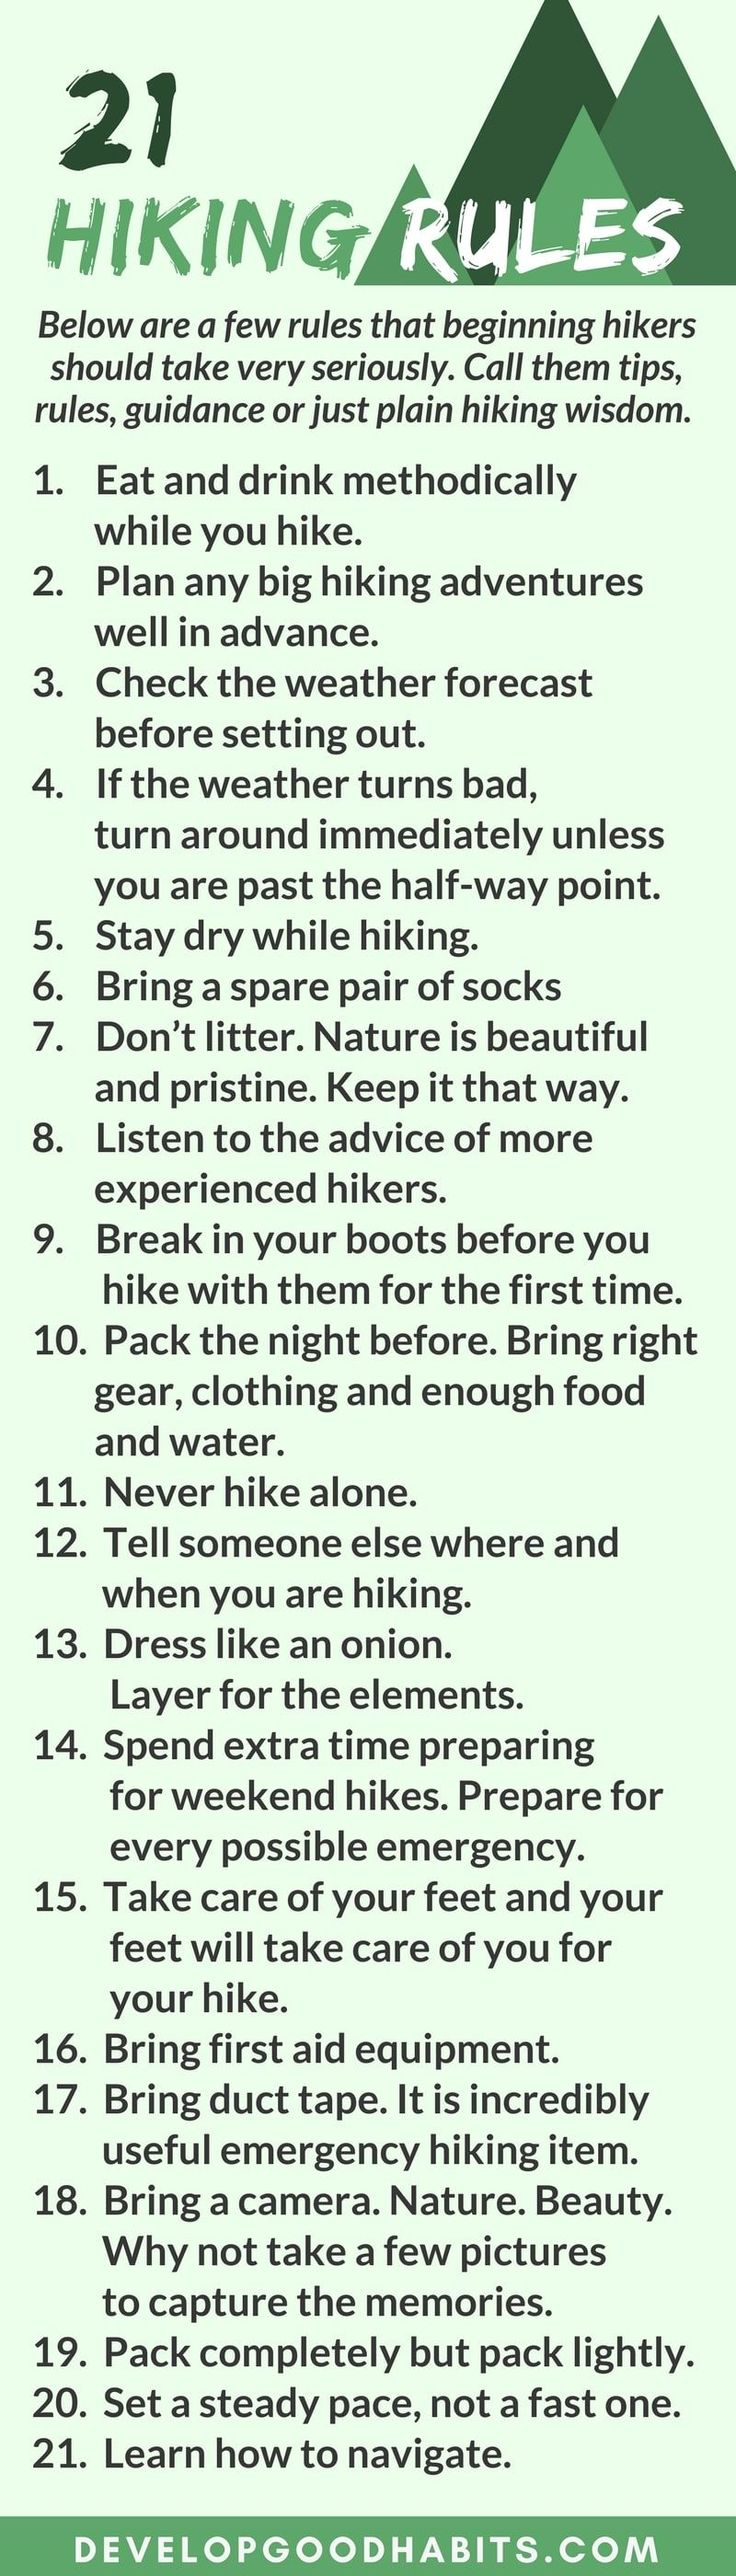 Hiking for Beginners: Hiking Benefits, Getting Started, Finding the Right Gear and More – Sue Robinson